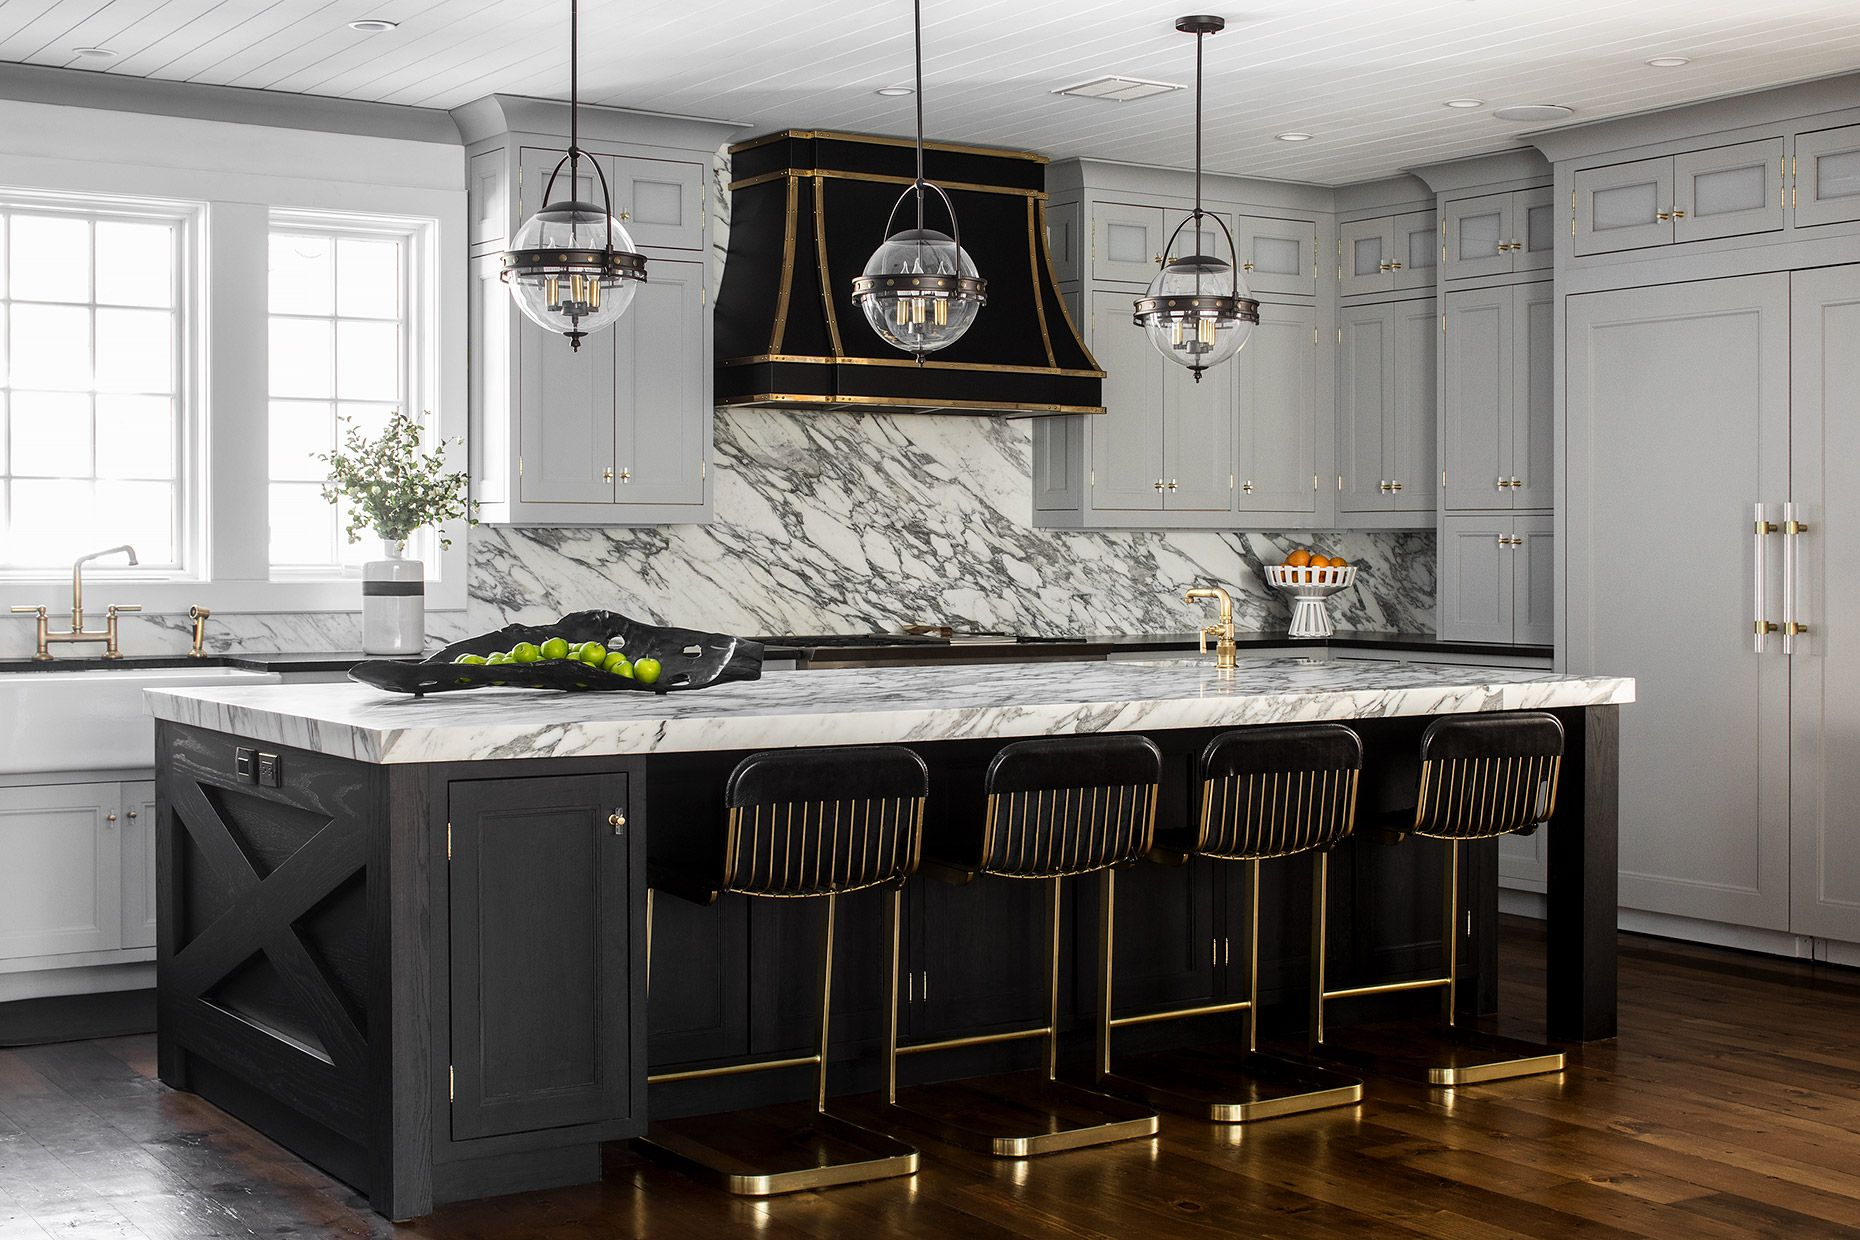 Kitchen Trends 11 - Designers Share Their Kitchen Predictions